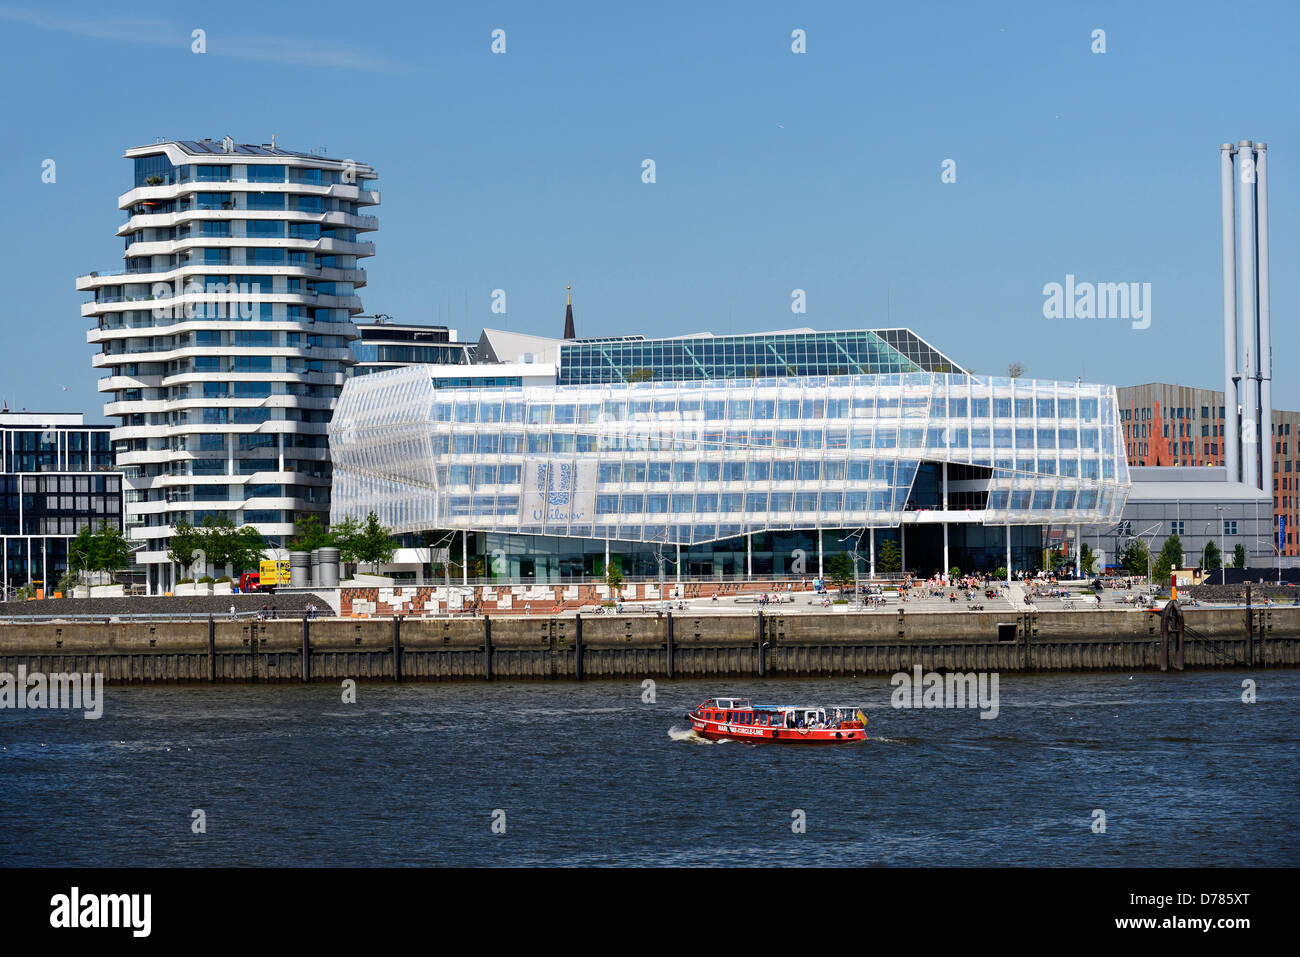 Marco Polo Tower and Unileverzentrale in the beach quay in the harbour city of Hamburg, Germany, Europe - Stock Image